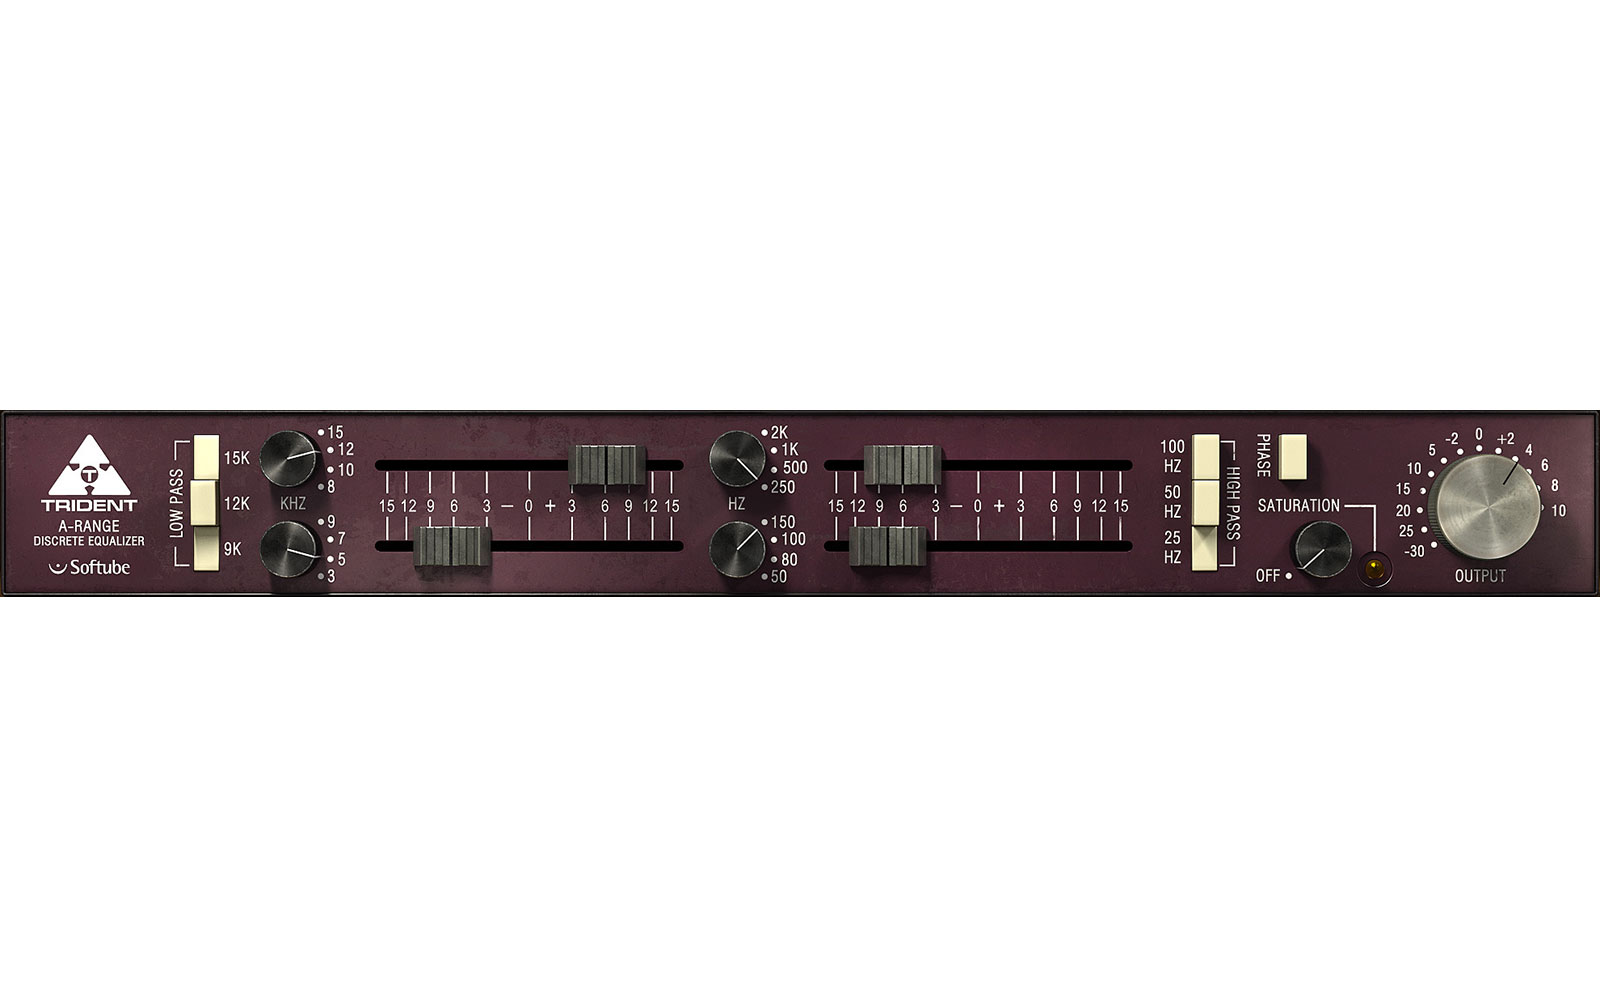 softube-trident-a-range-esd-download-